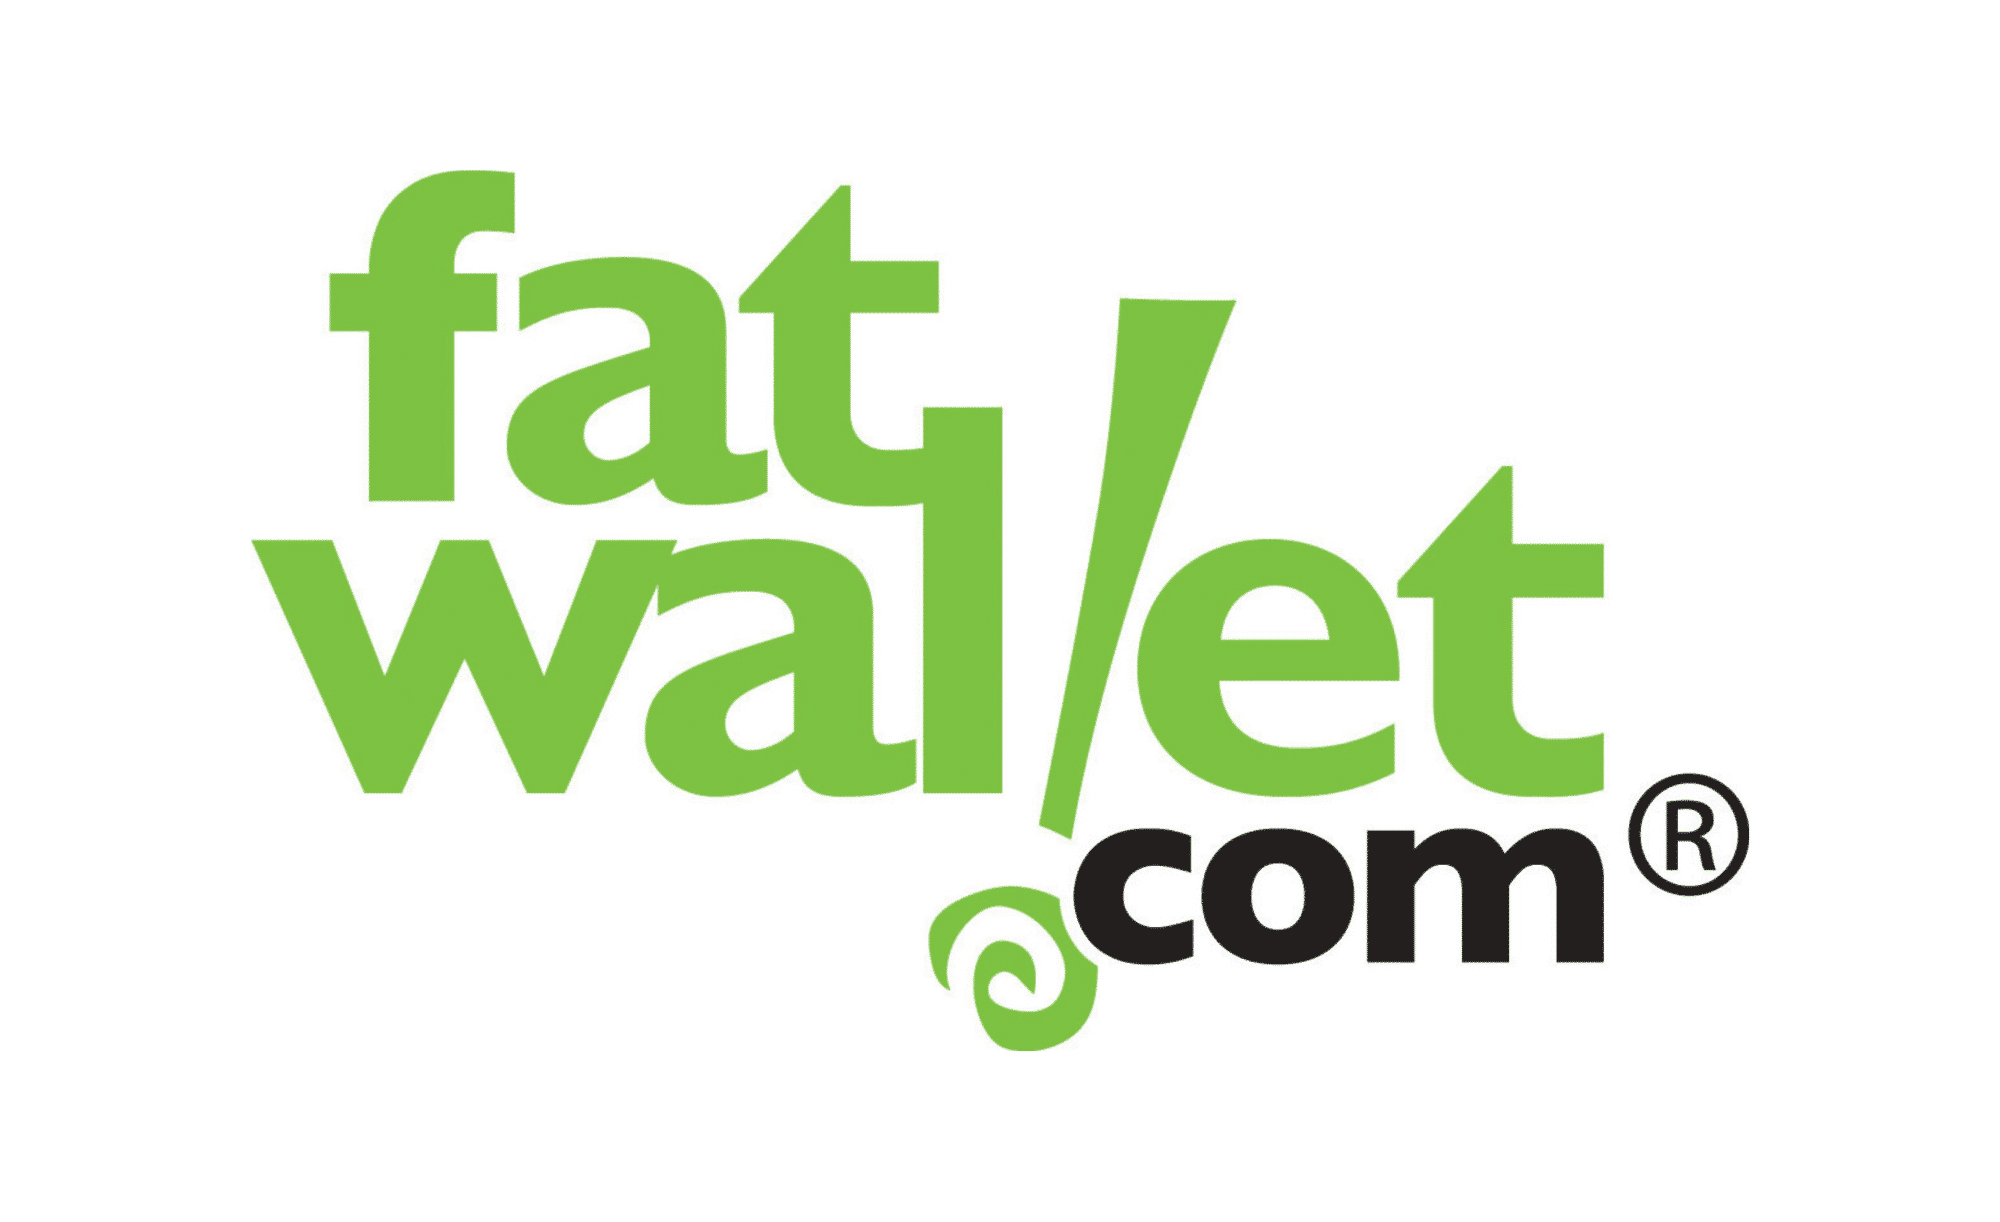 What Happened to FatWallet.com?